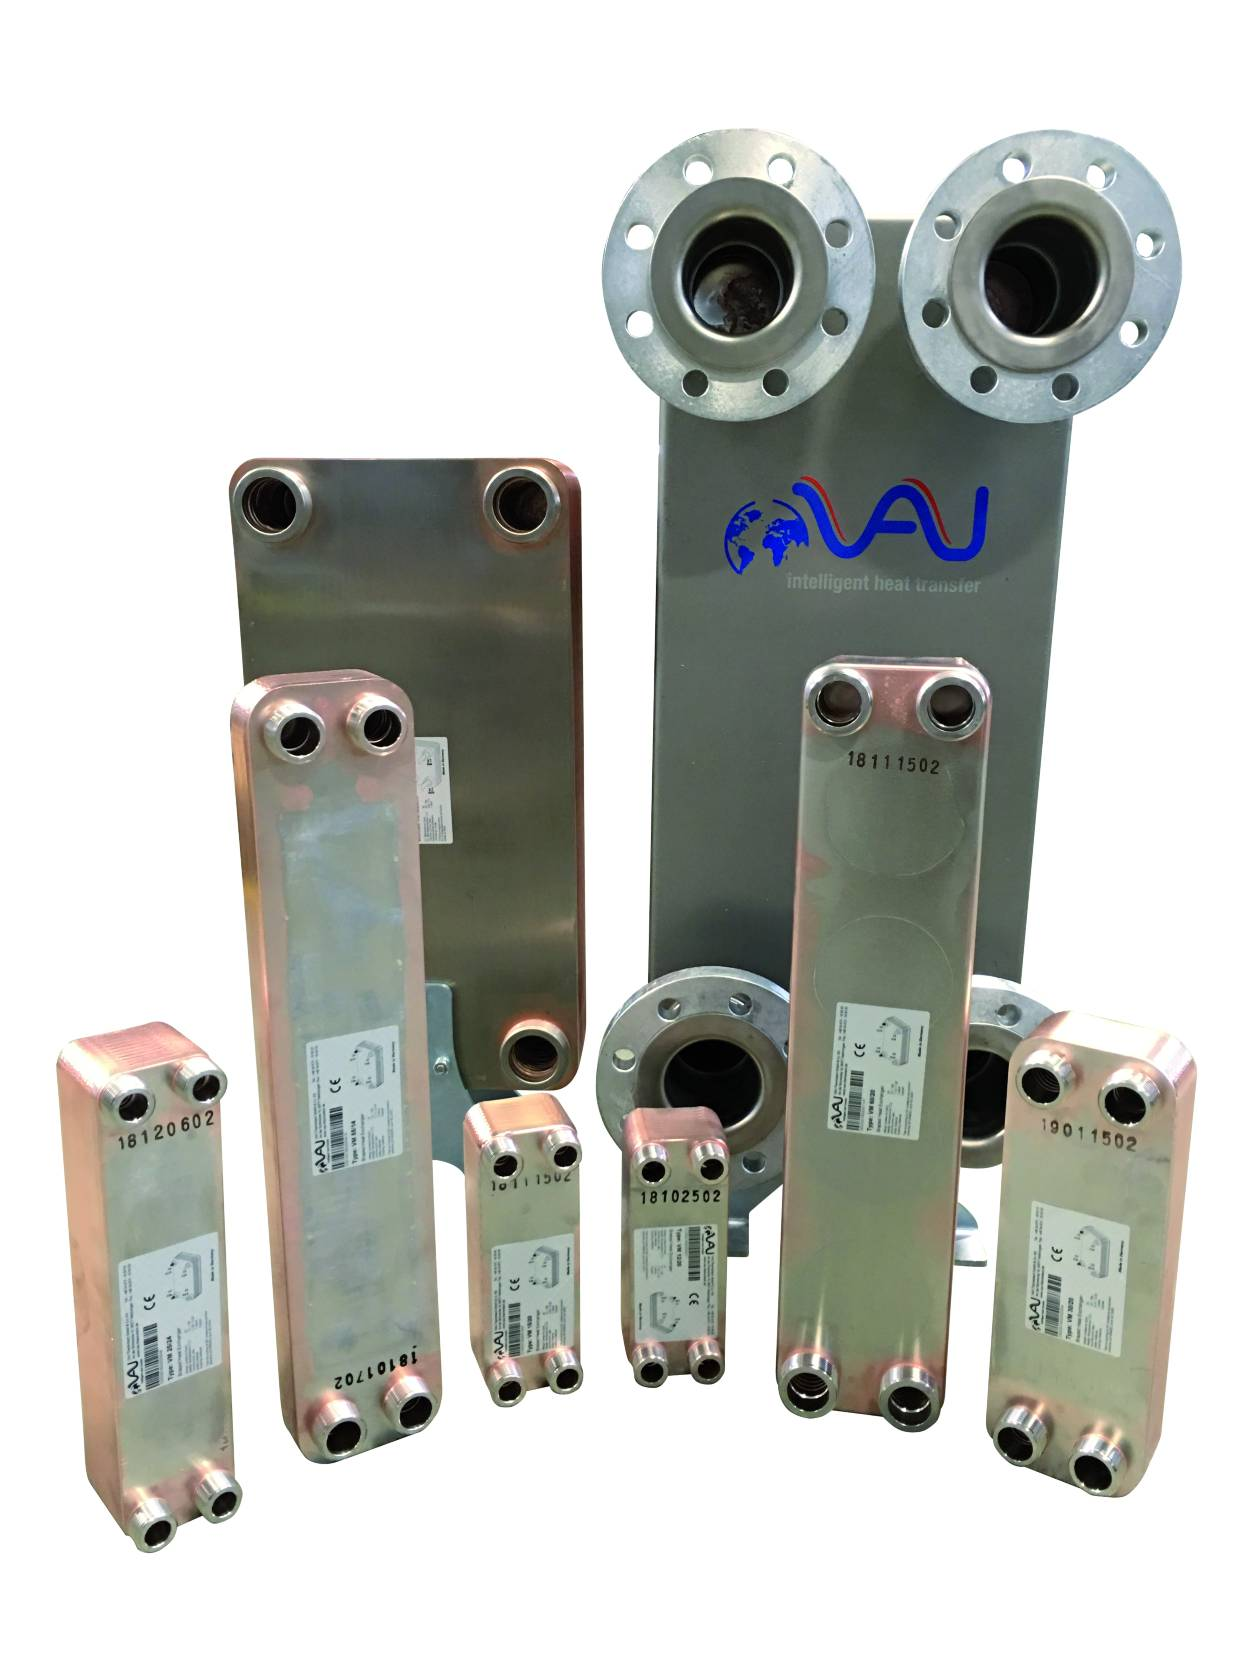 brazed plate heat exchangers can be delivered within 24 hours